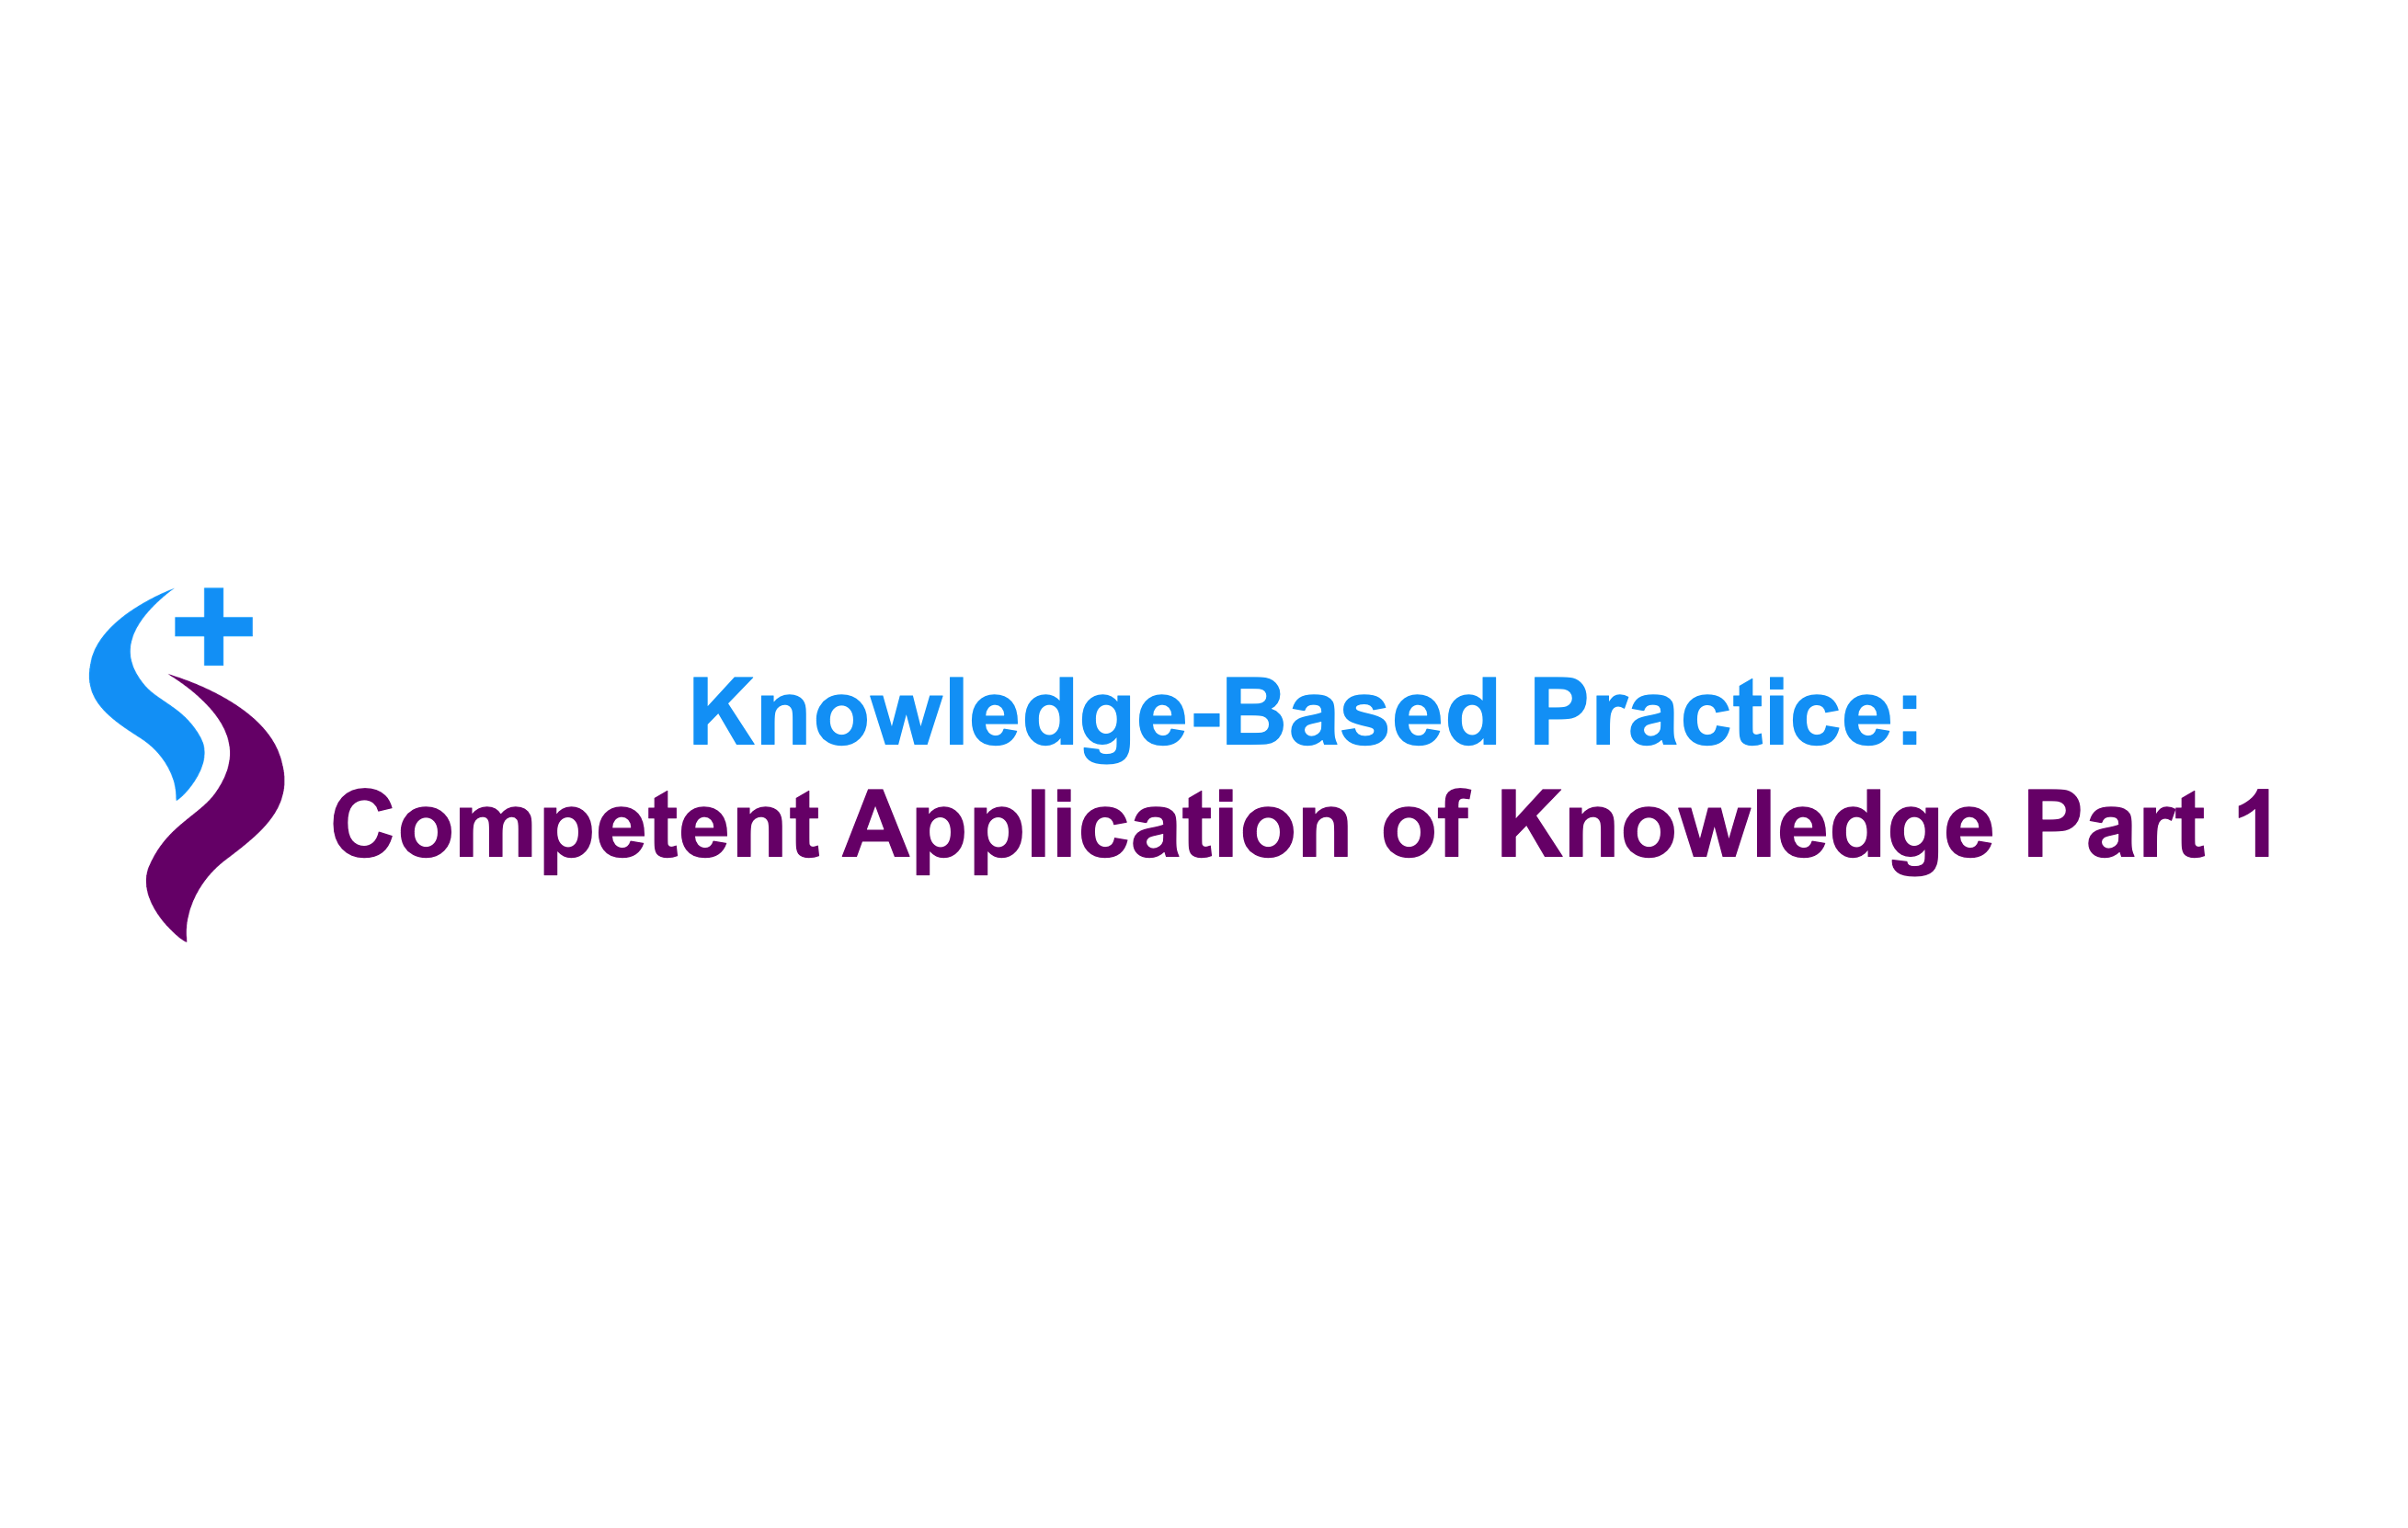 Knowledge-Based Practice: Competent Application of Knowledge (Part 1) – C2